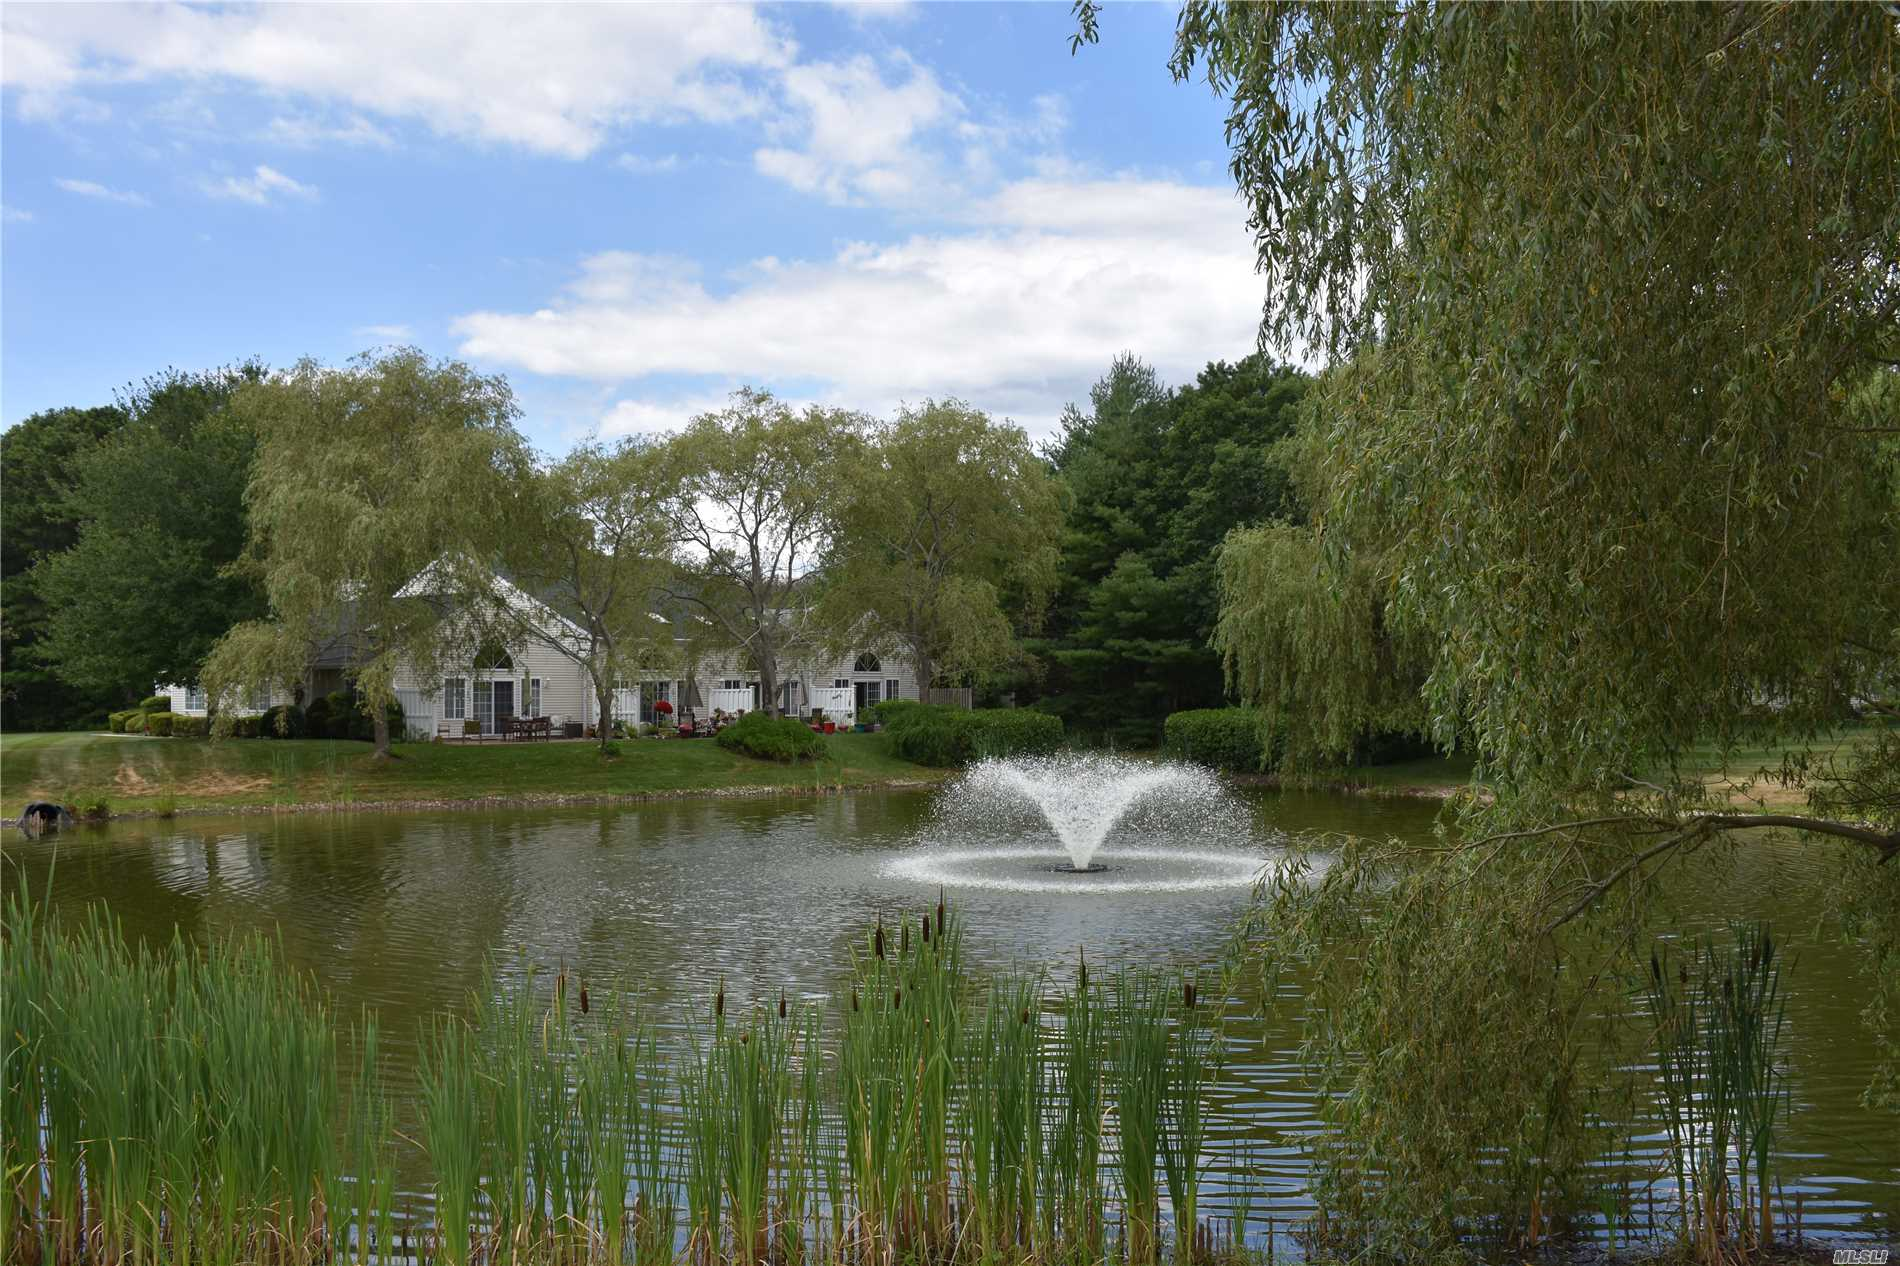 Beautiful Brookwood Ranch Set On A Pond In The Prestigious Gated Silverponds Townhome Community, One Level Unit Features 2 Bedrooms, 2 Full Baths, Spacious Living And Dining Rooms, Eik, Laundry Area, 2 Car Garage, Pull Down Attic Storage, Private Patio, New Washer And Dryer, Upgrades In Both Bathrooms, Newer Garage Door W/Remote, New Lighting, 3 Solar Lights, New Optimum Cable Wiring, 3 Pools, Clubhouse, 3 Tennis Courts, Gym, Billiards, Basket And Handball, Shuffle Board, Playground And More